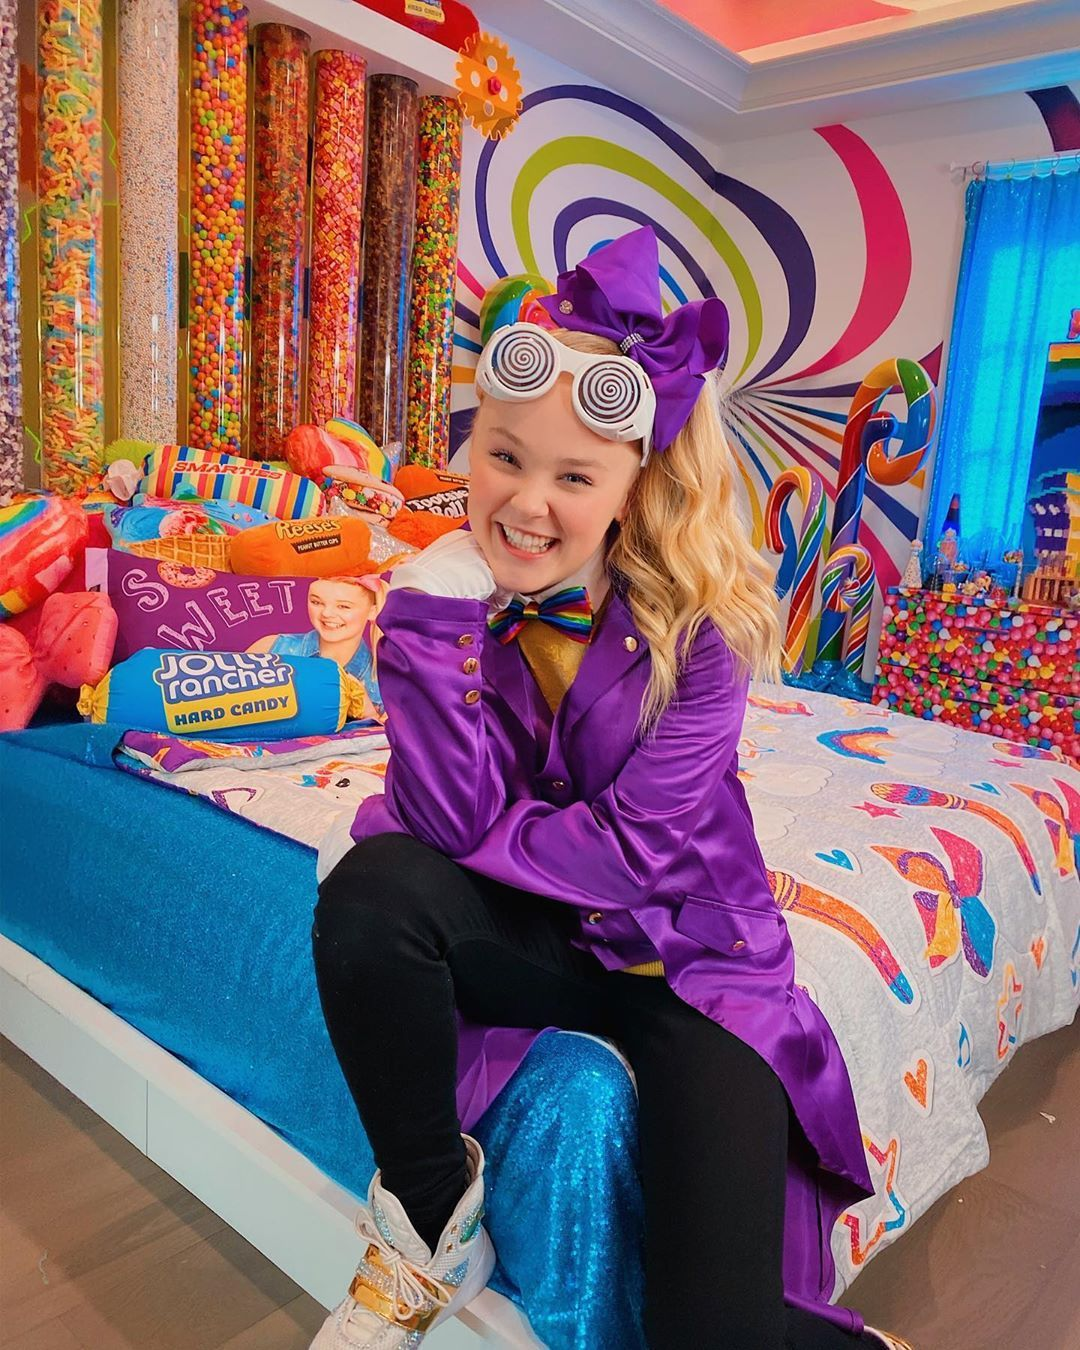 Jojo Siwa Gives Tour Of New Bedroom Which Holds 4000 Pounds Of Candy